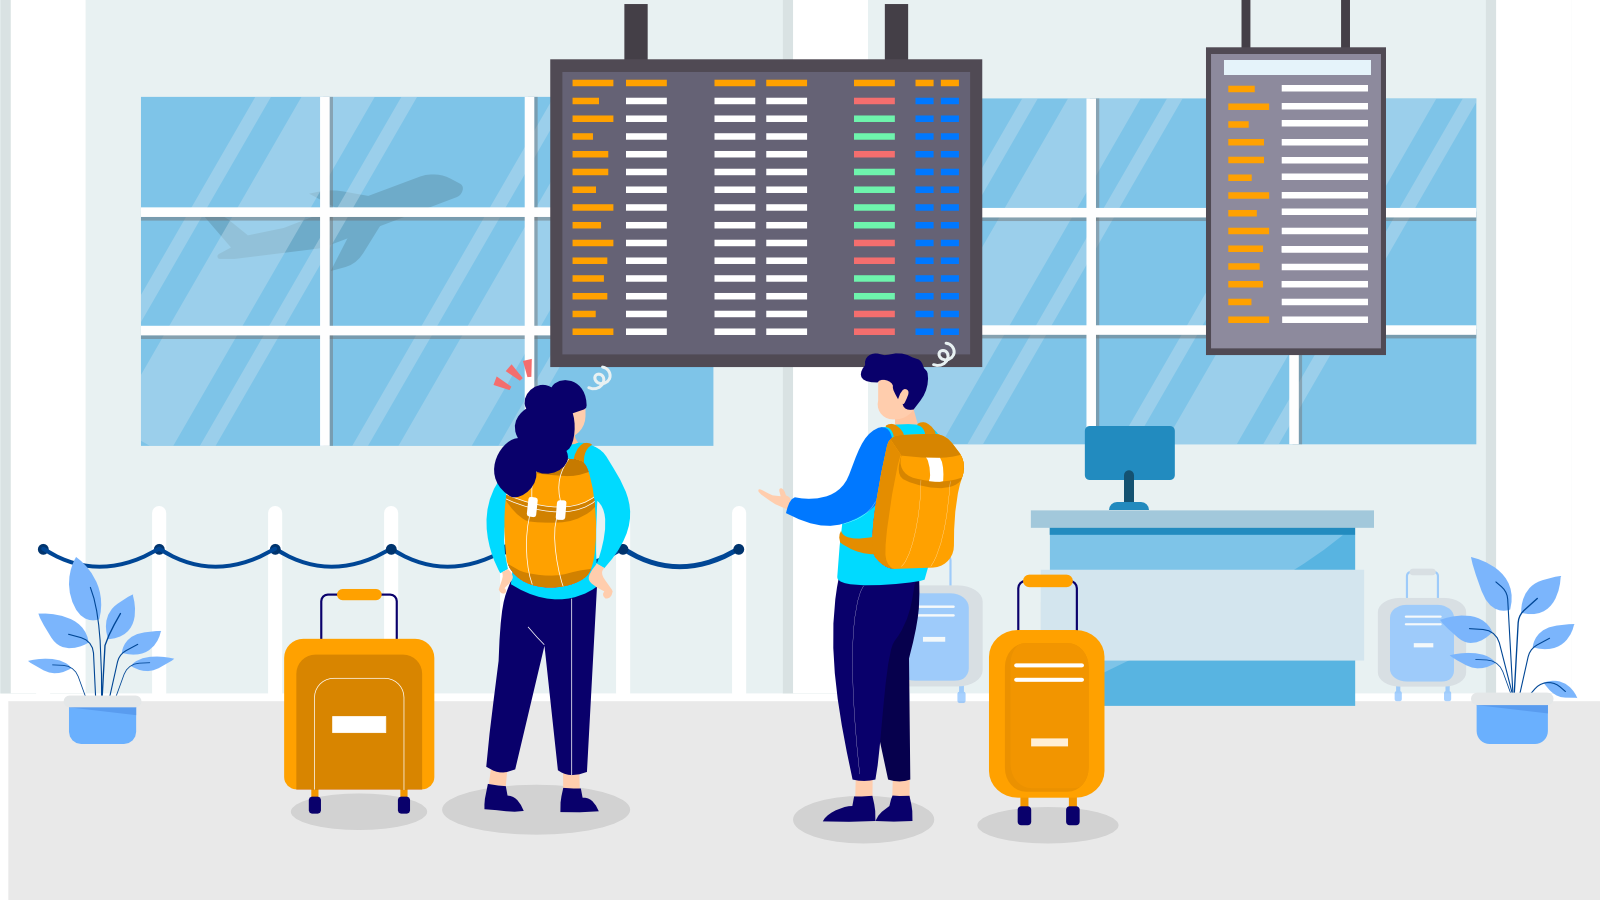 Indoor navigation for airports